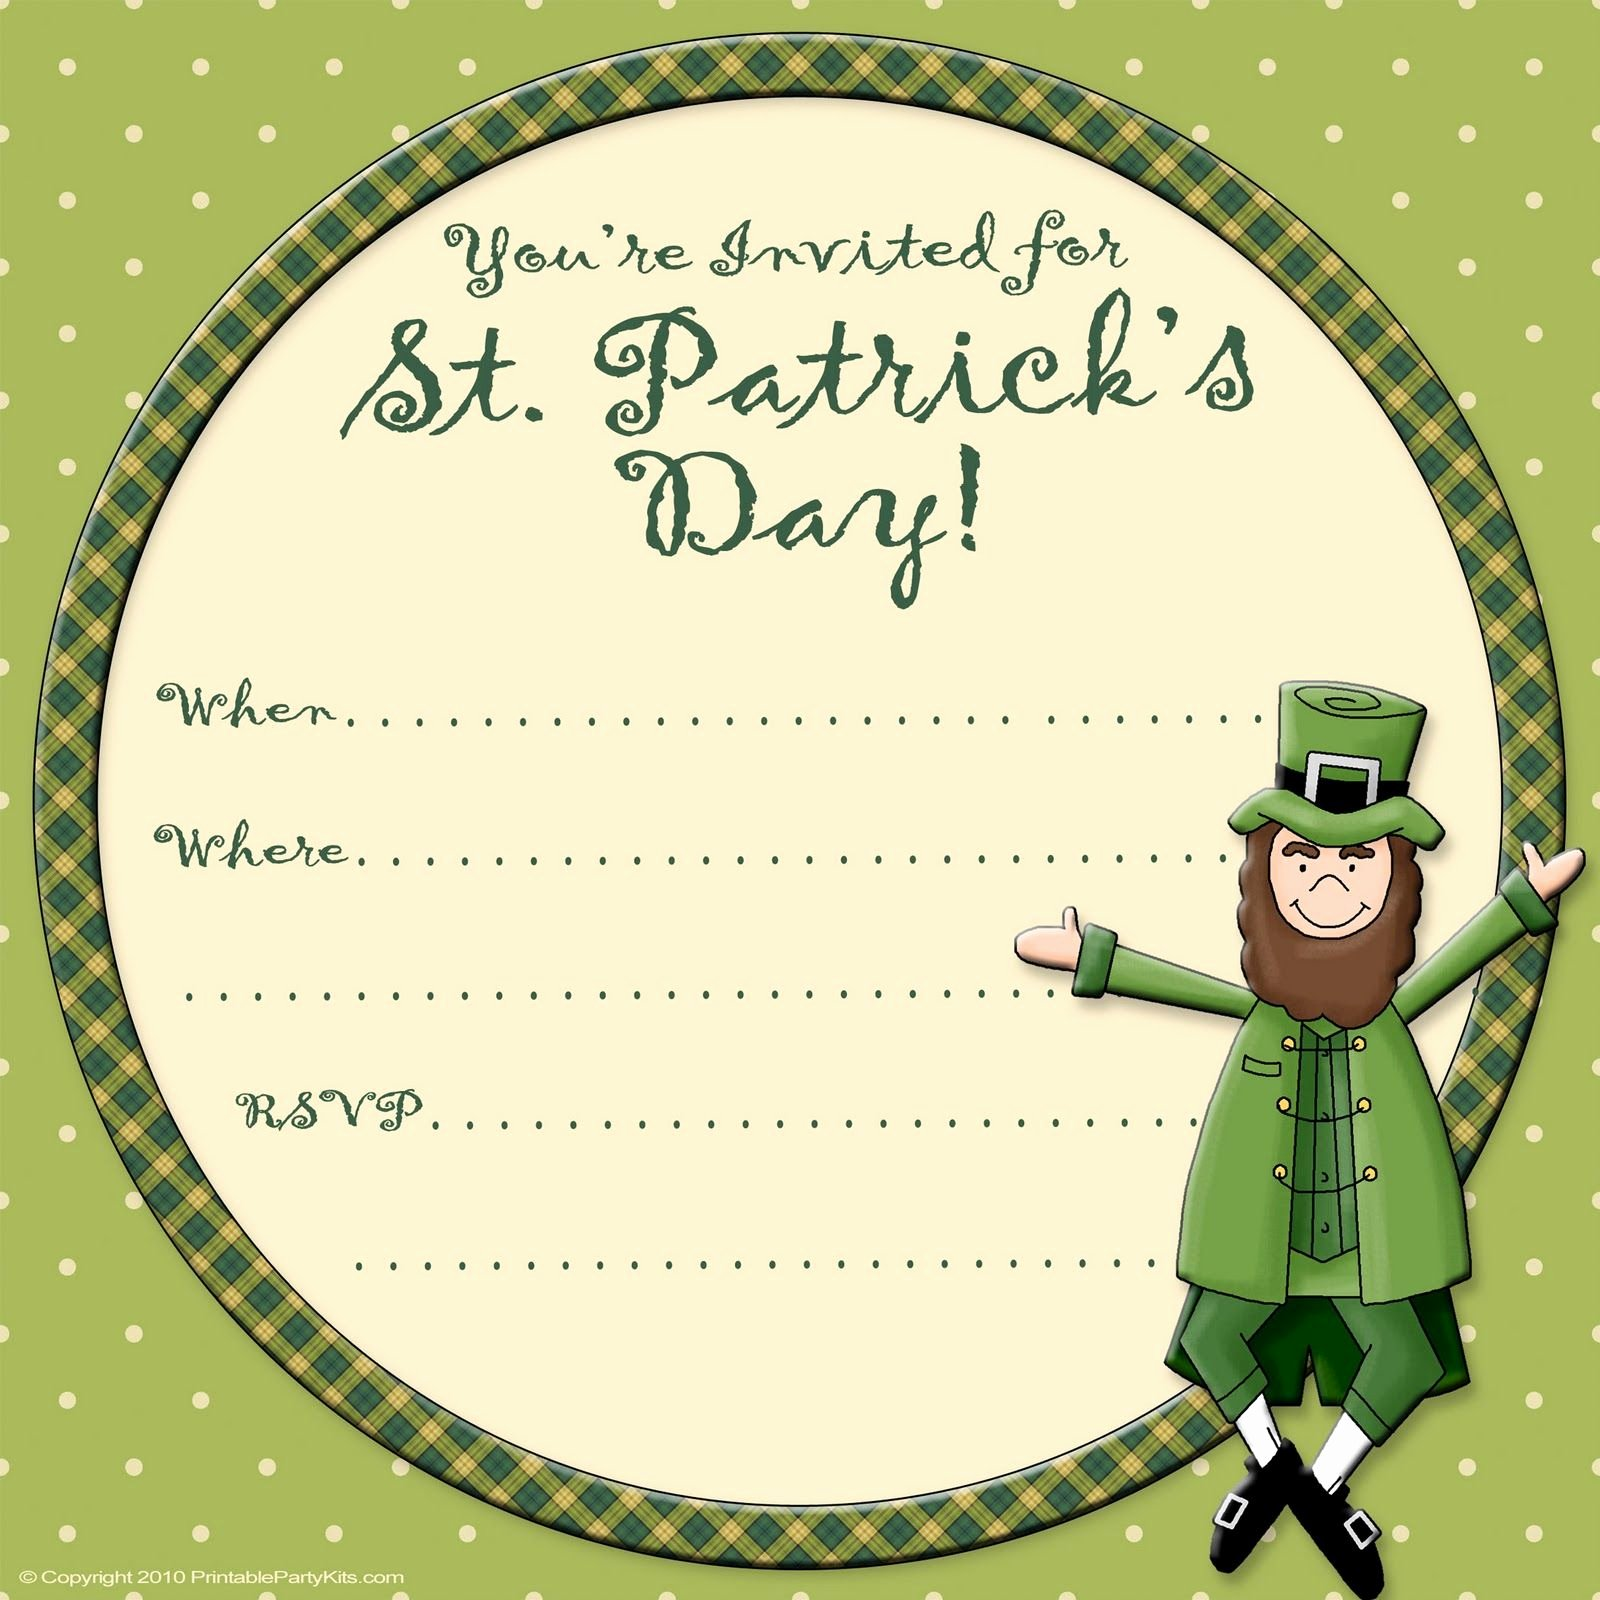 Media Announcement Template Fresh Free Printable Party Invitations Free St Patrick S Day